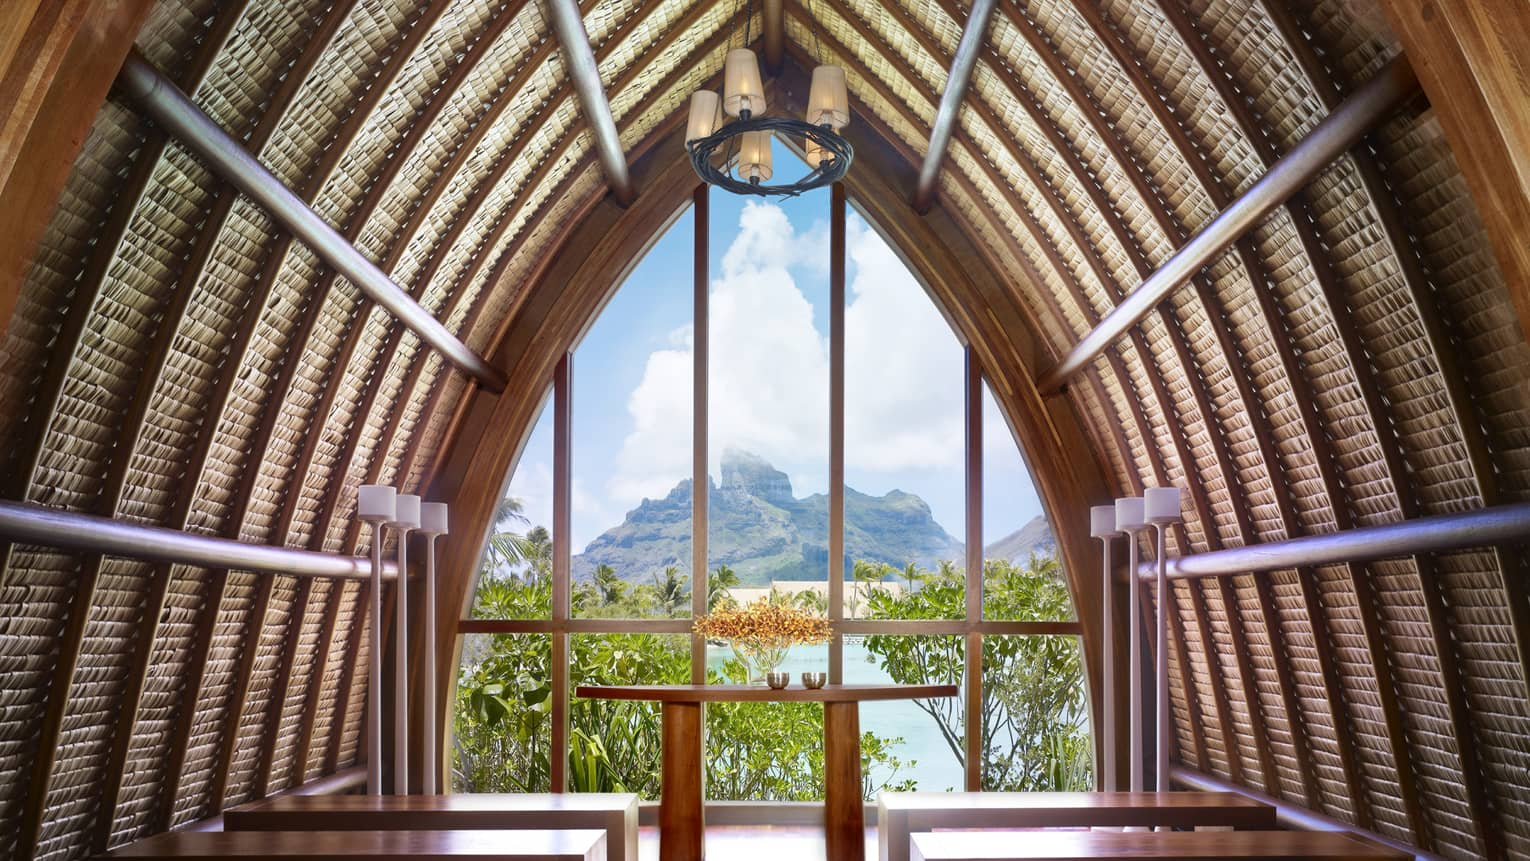 Arched roof of Aherenona chapel with end window looking over resort, lagoon and mountain